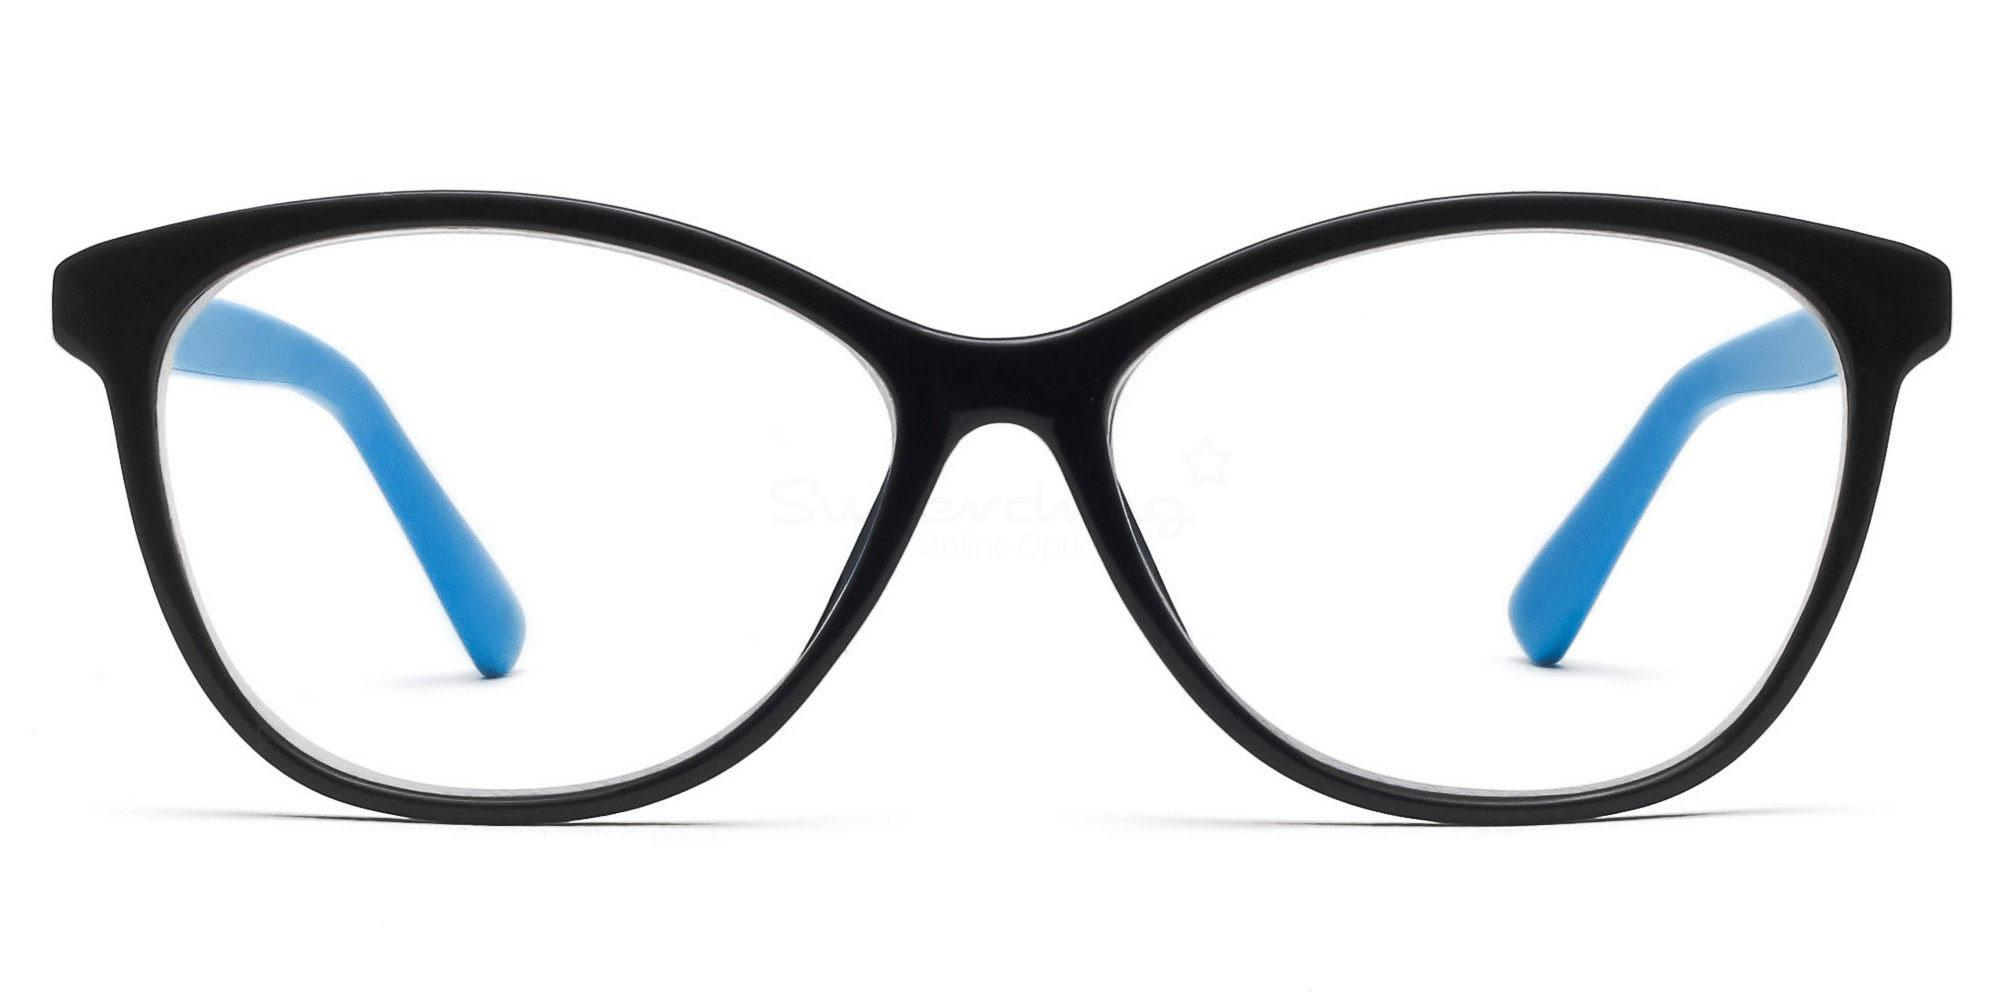 COL.88 2439 - Black and Blue Glasses, Helium